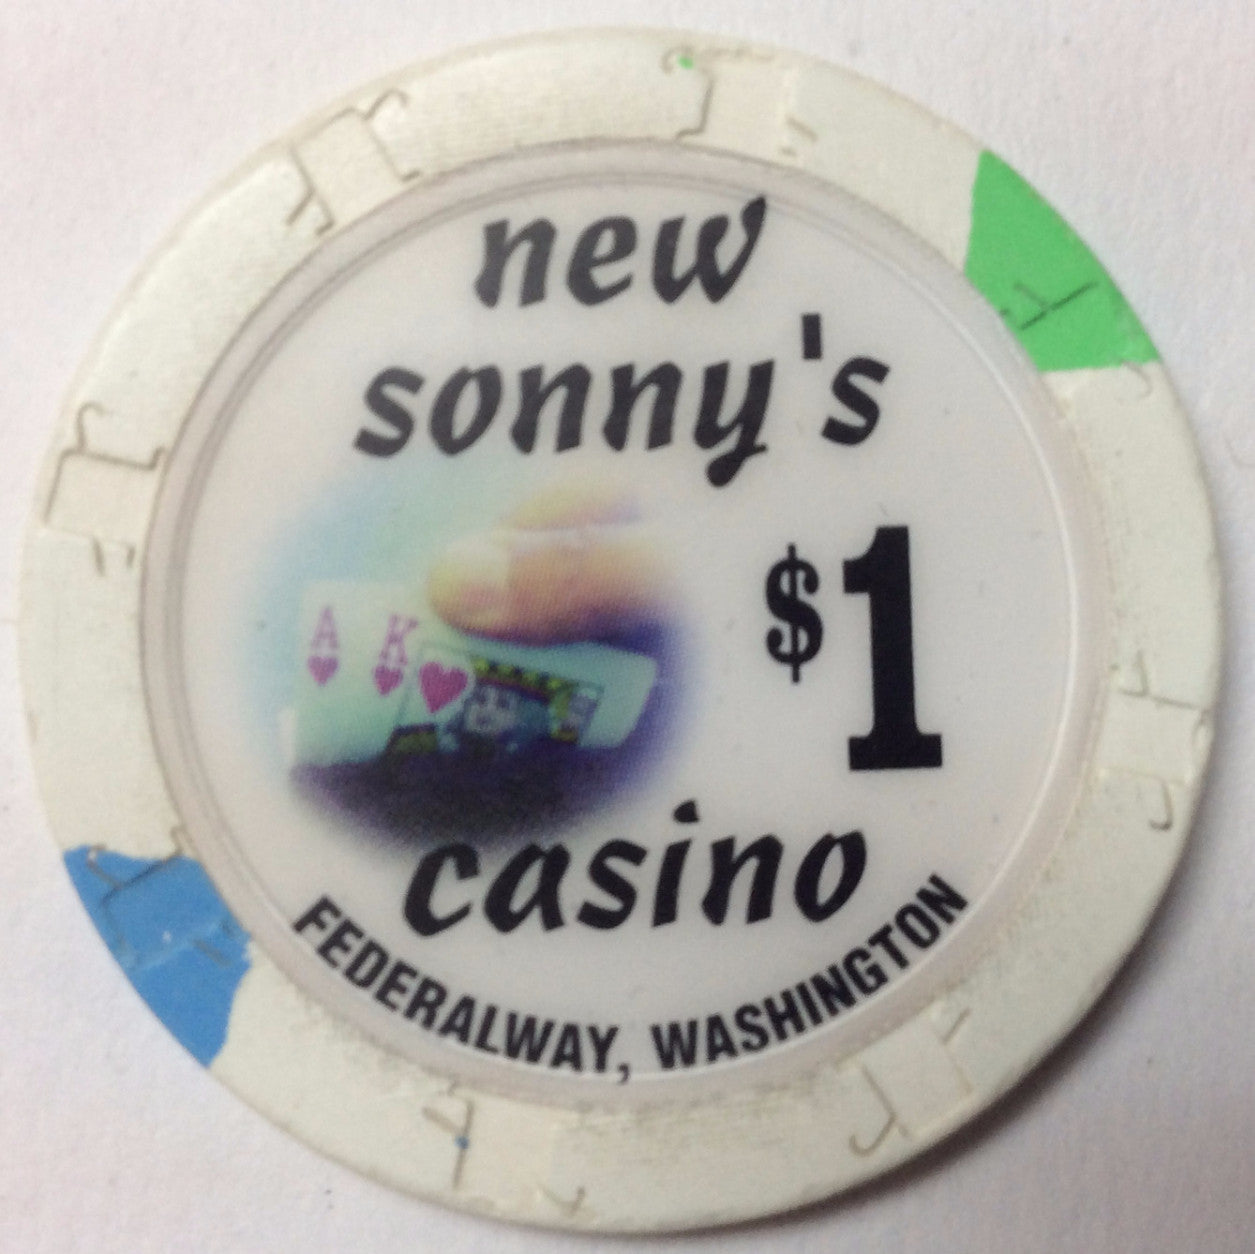 New Sonny's Casino $1 Chip Washington - Spinettis Gaming